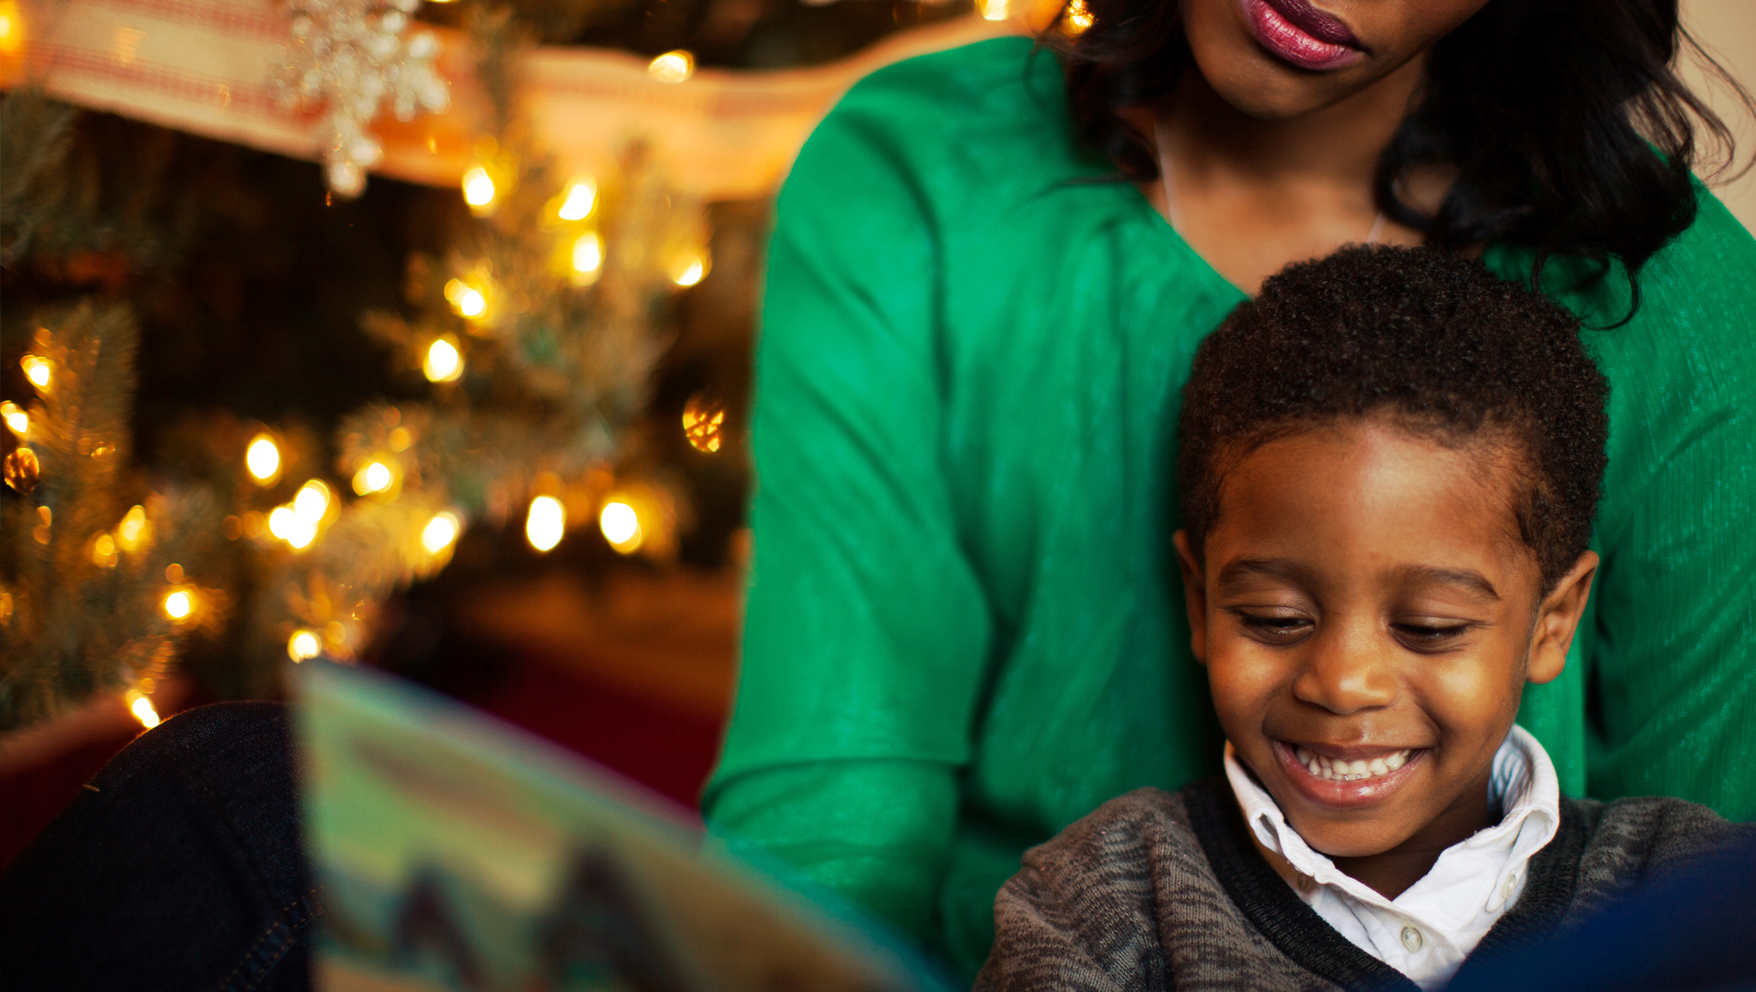 10 Best Christmas Books for Families